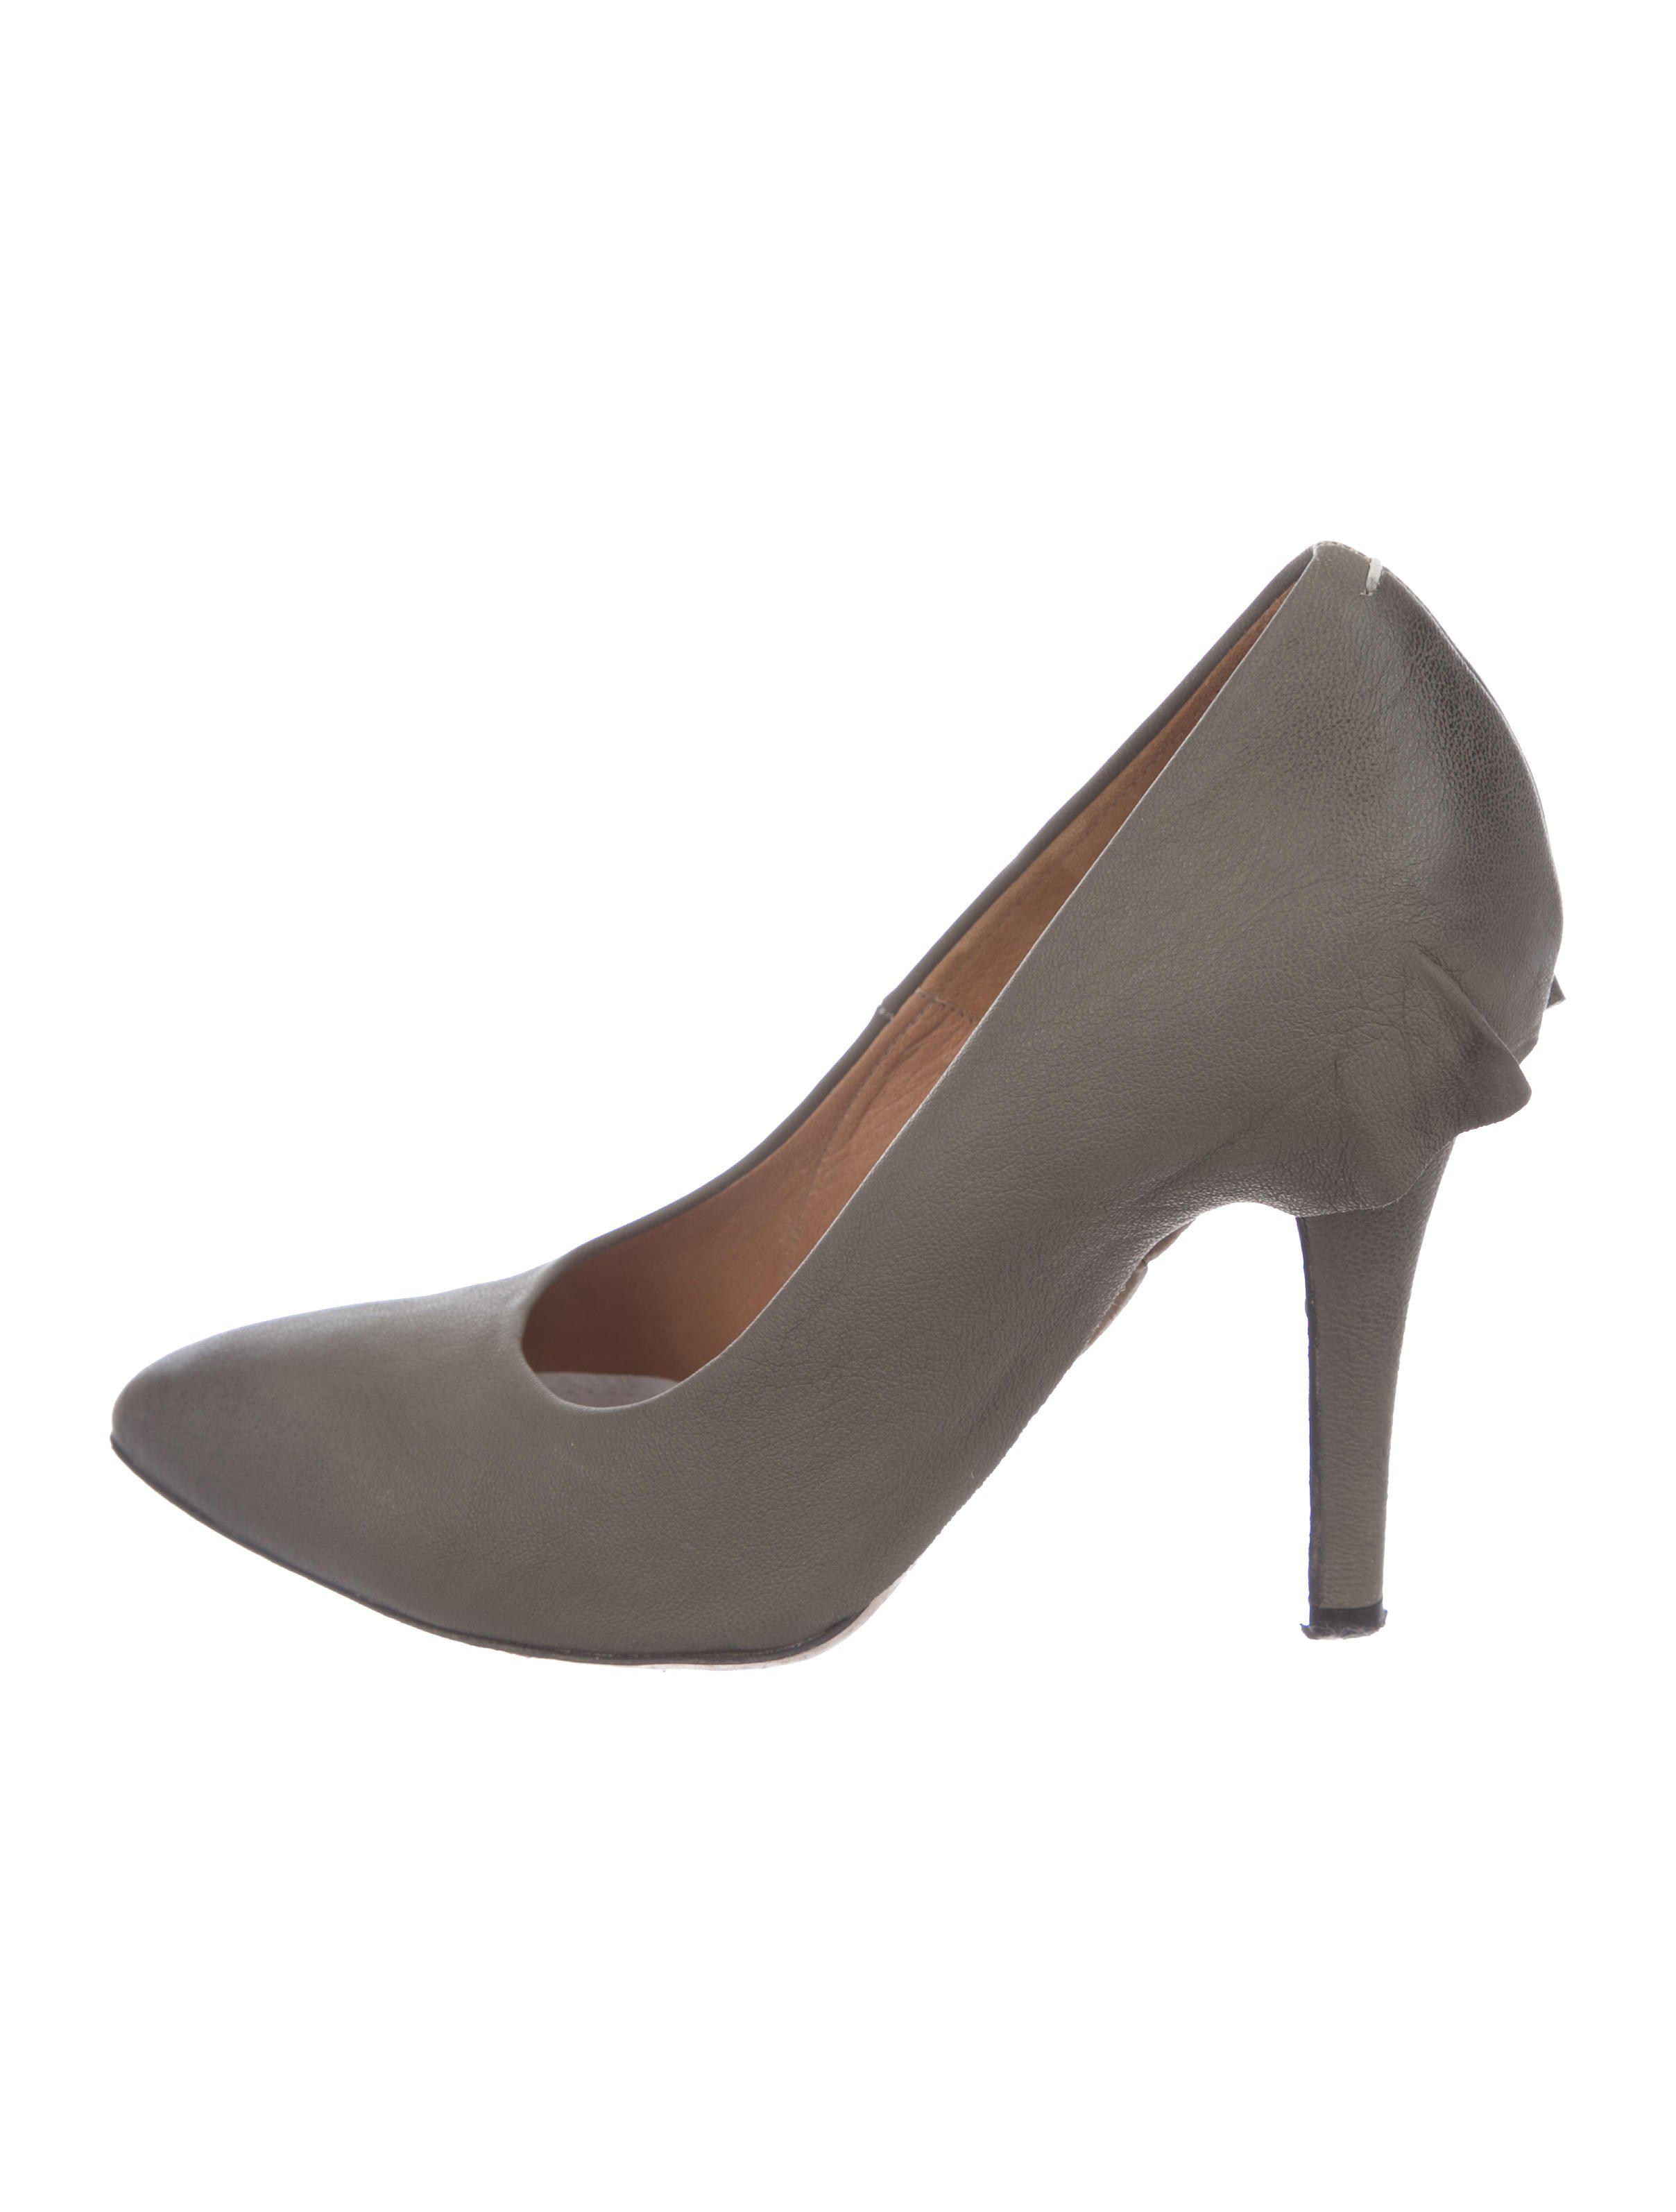 Maison Margiela Skirted Leather Pumps buy cheap top quality cheap new arrival sale get authentic 0Iij7WN3